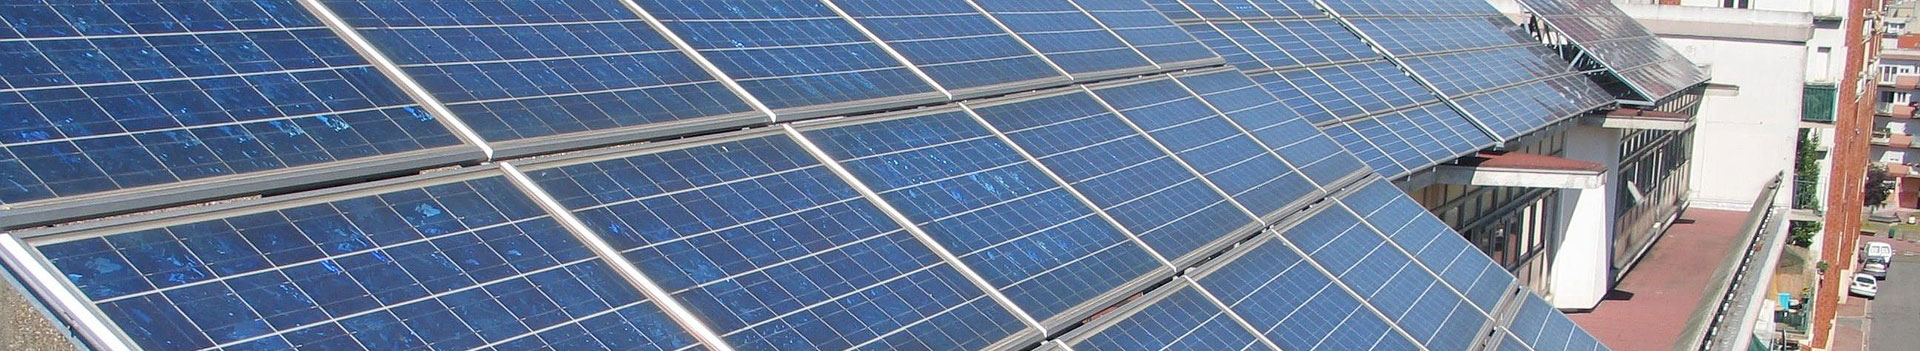 Solar Systems for Rooftops